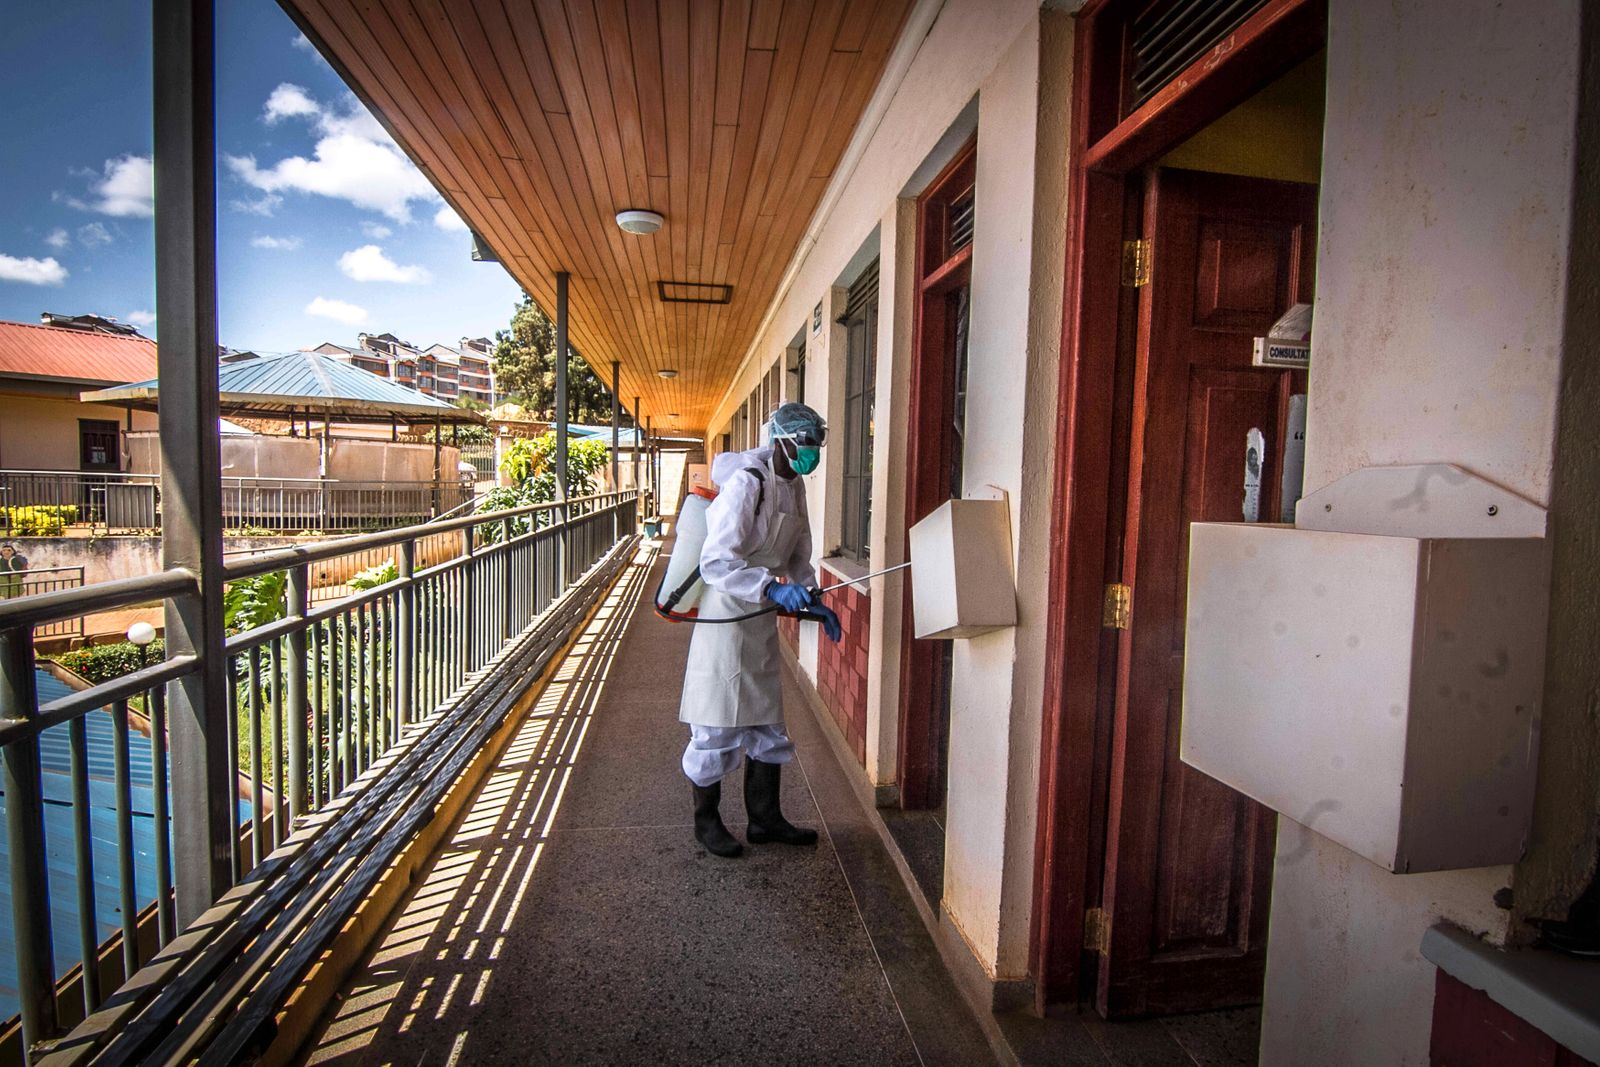 April 11, 2020, Nairobi, Kenya: A local health official wearing a protective suit sprays disinfectant solution inside a